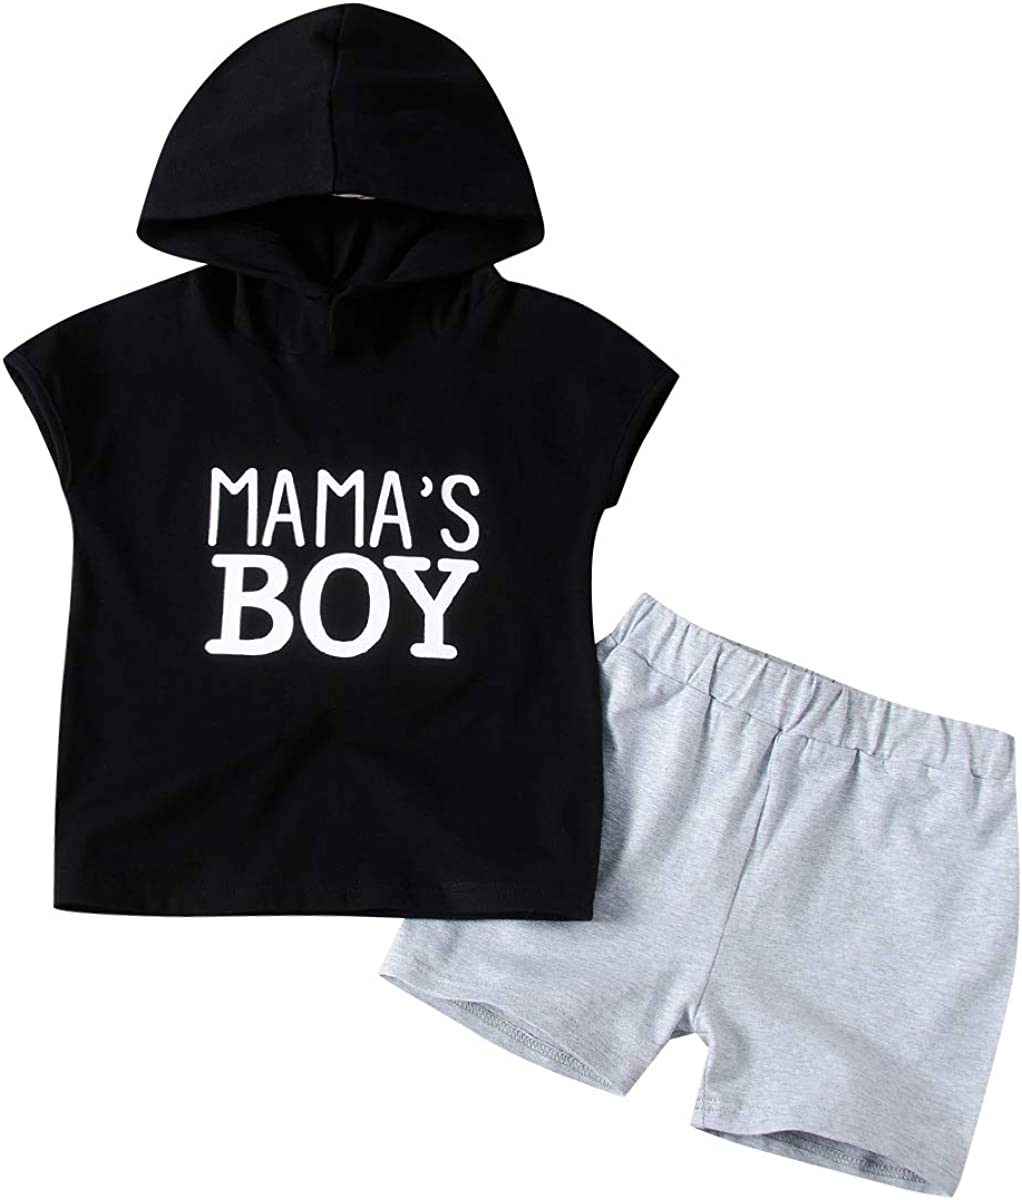 Toddler Infant Baby Boy Clothes Breathable Hoodie Sweatshirt Tops Camouflage Shorts Outfit Sets